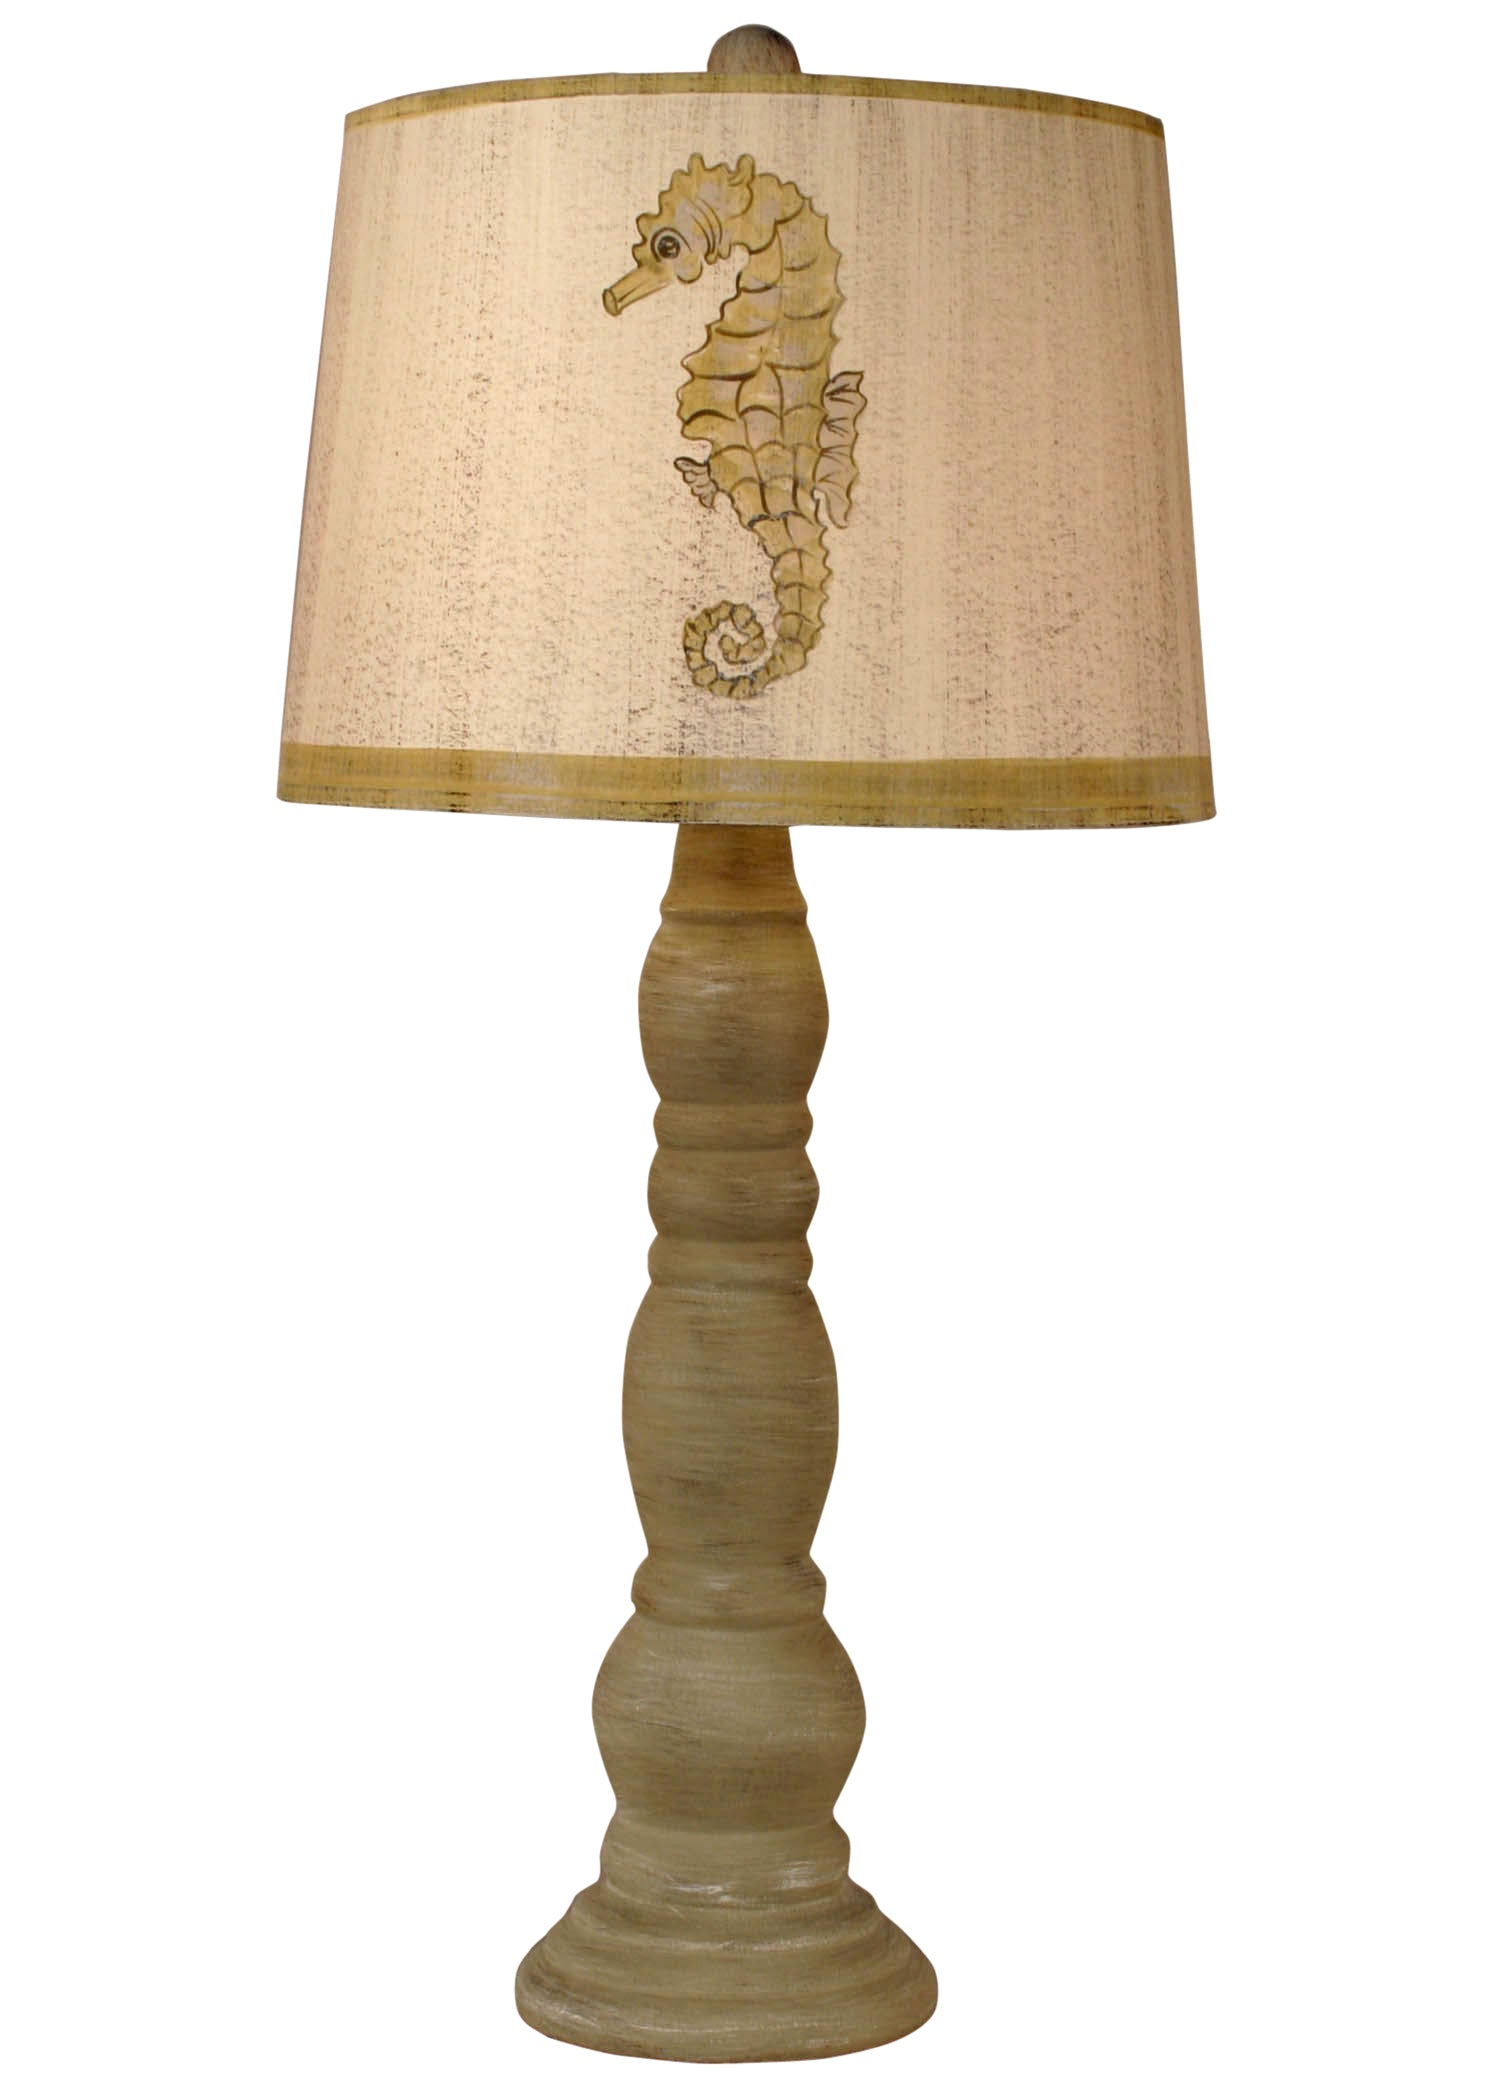 Cottage Shoreline Tan Ringed Candlestick Table Lamp w/ Seahorse Shade - Coast Lamp Shop